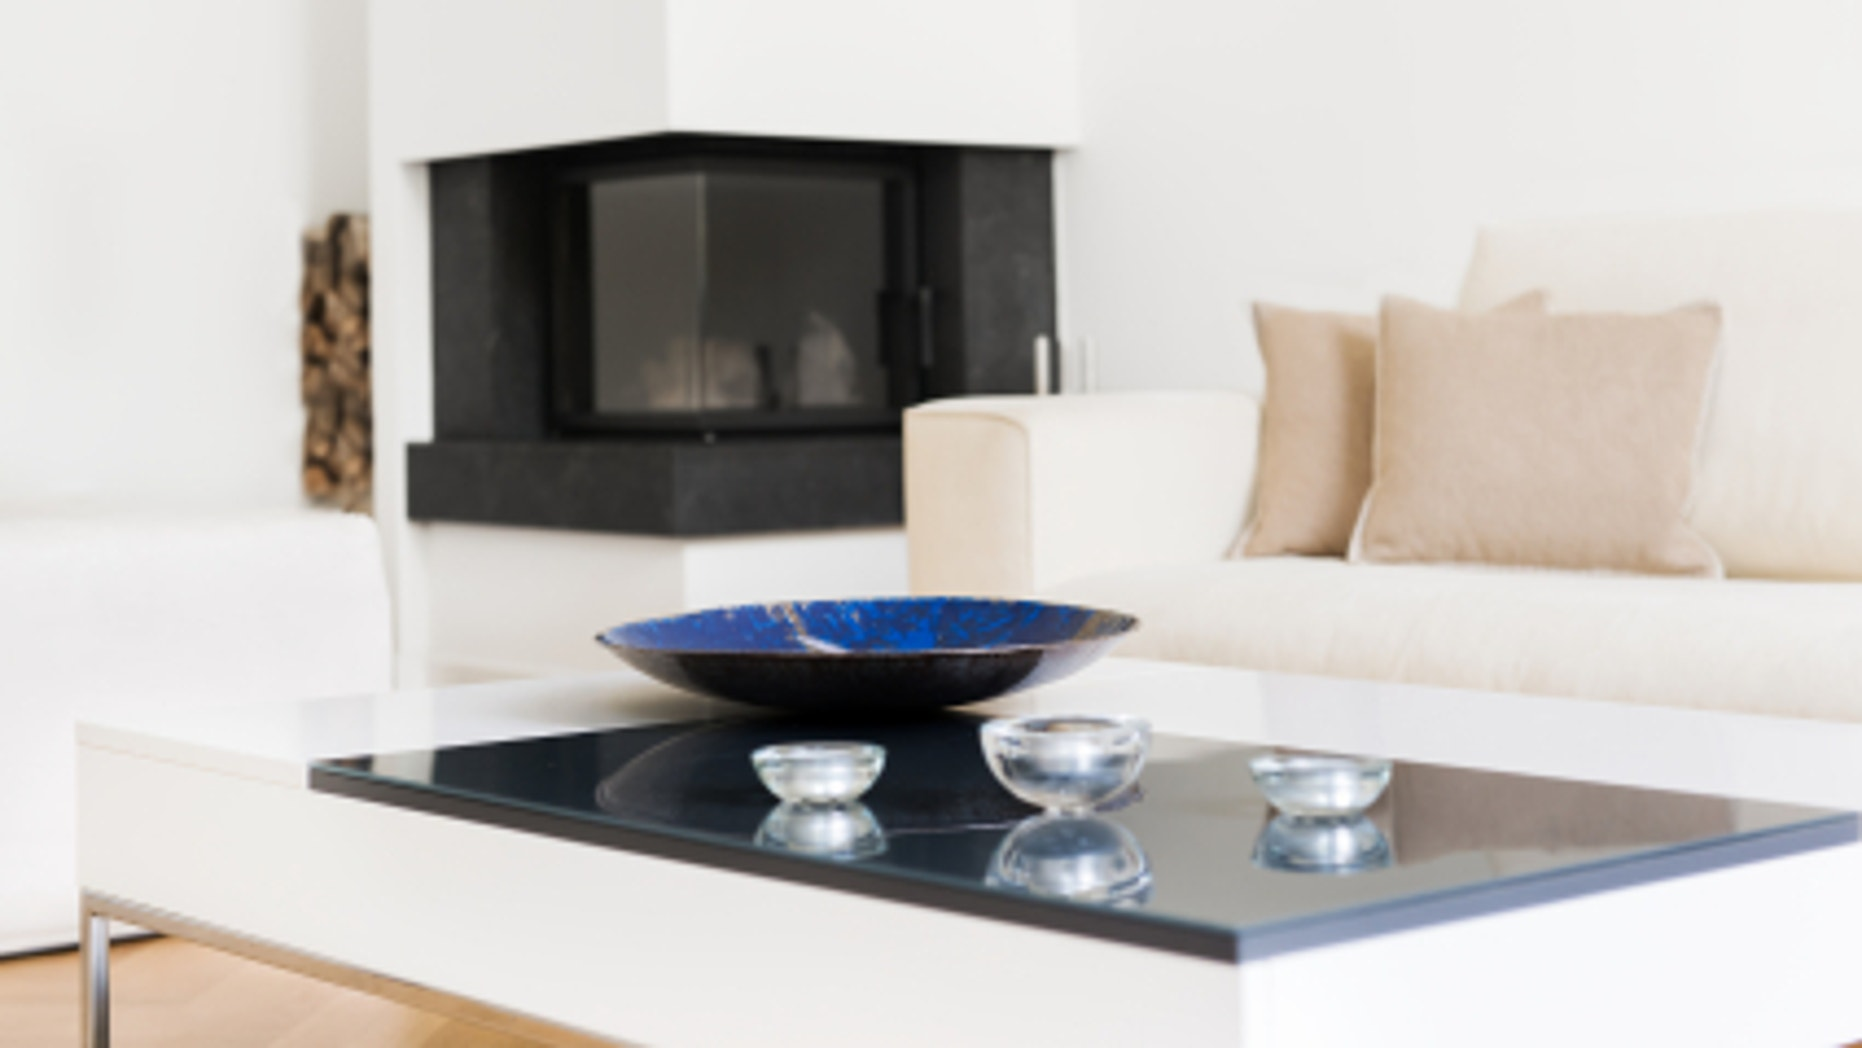 Staging Your Home While You Live There